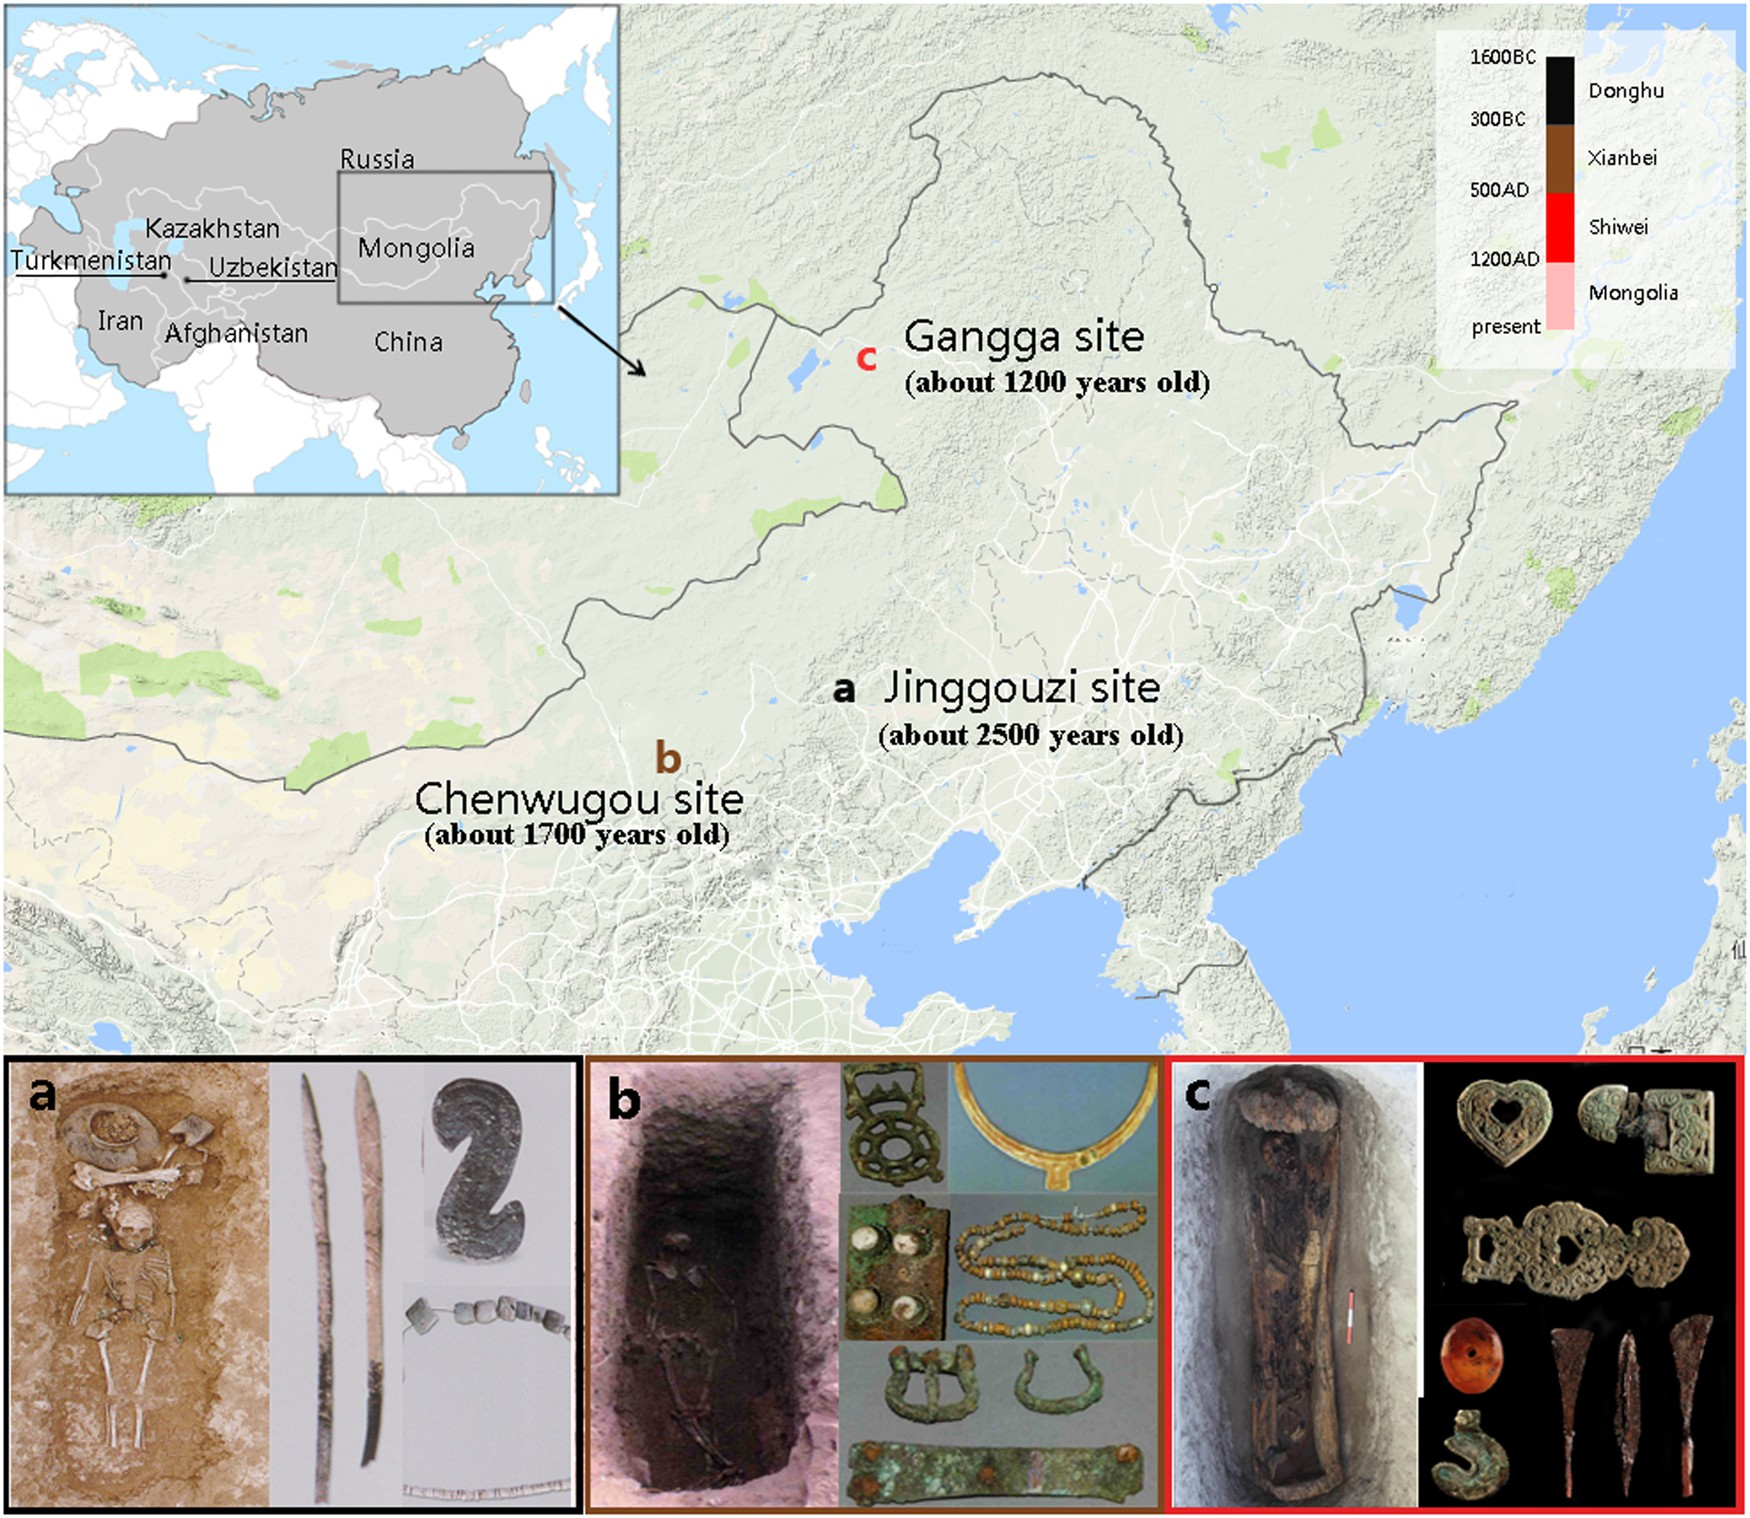 The Y-chromosome haplogroup C3*-F3918, likely attributed to the Mongol